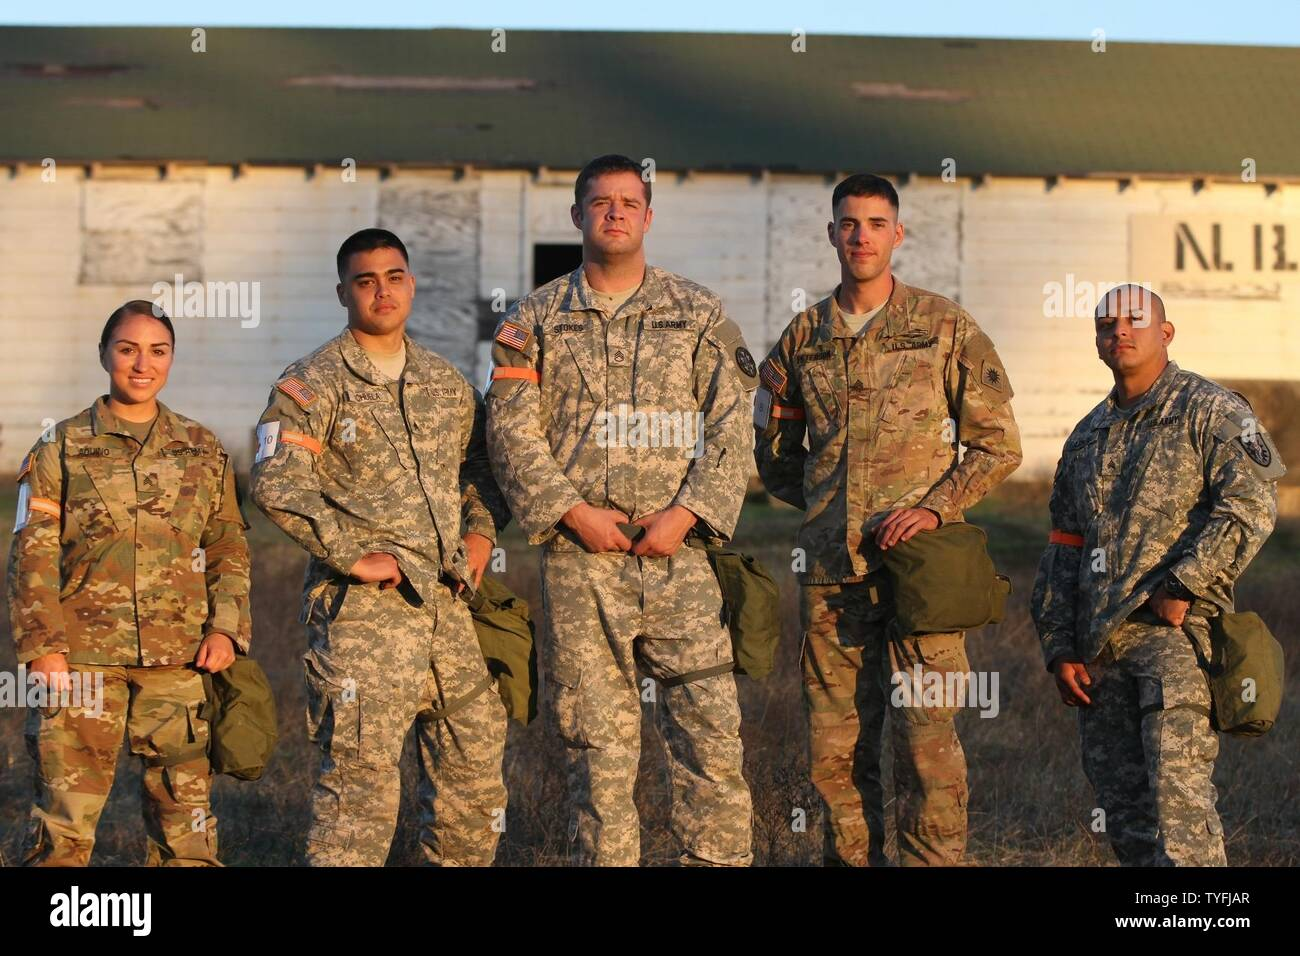 Page 3 California Army National Guard Staff High Resolution Stock Photography And Images Alamy